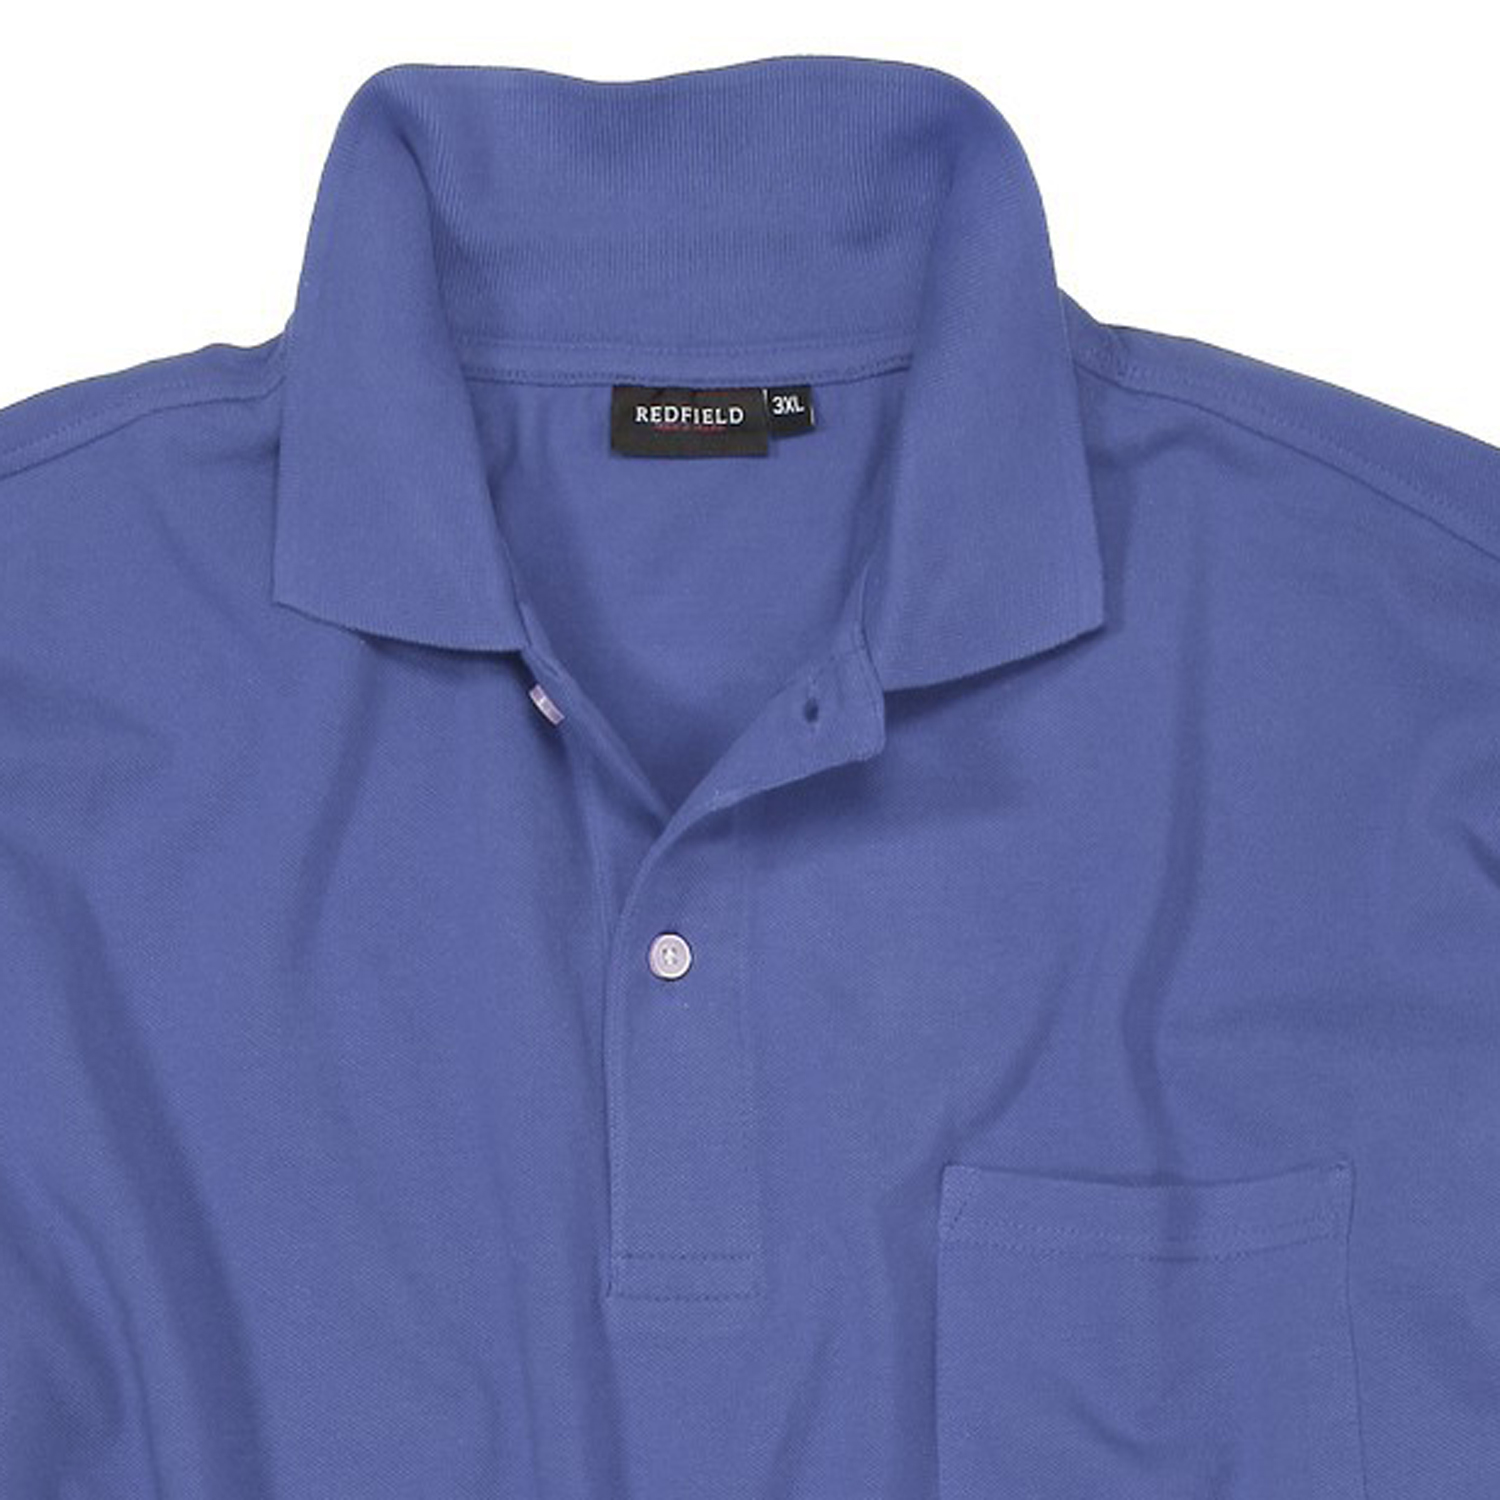 Detail Image to Blue polo shirt by Redfield in oversizes up to 8XL